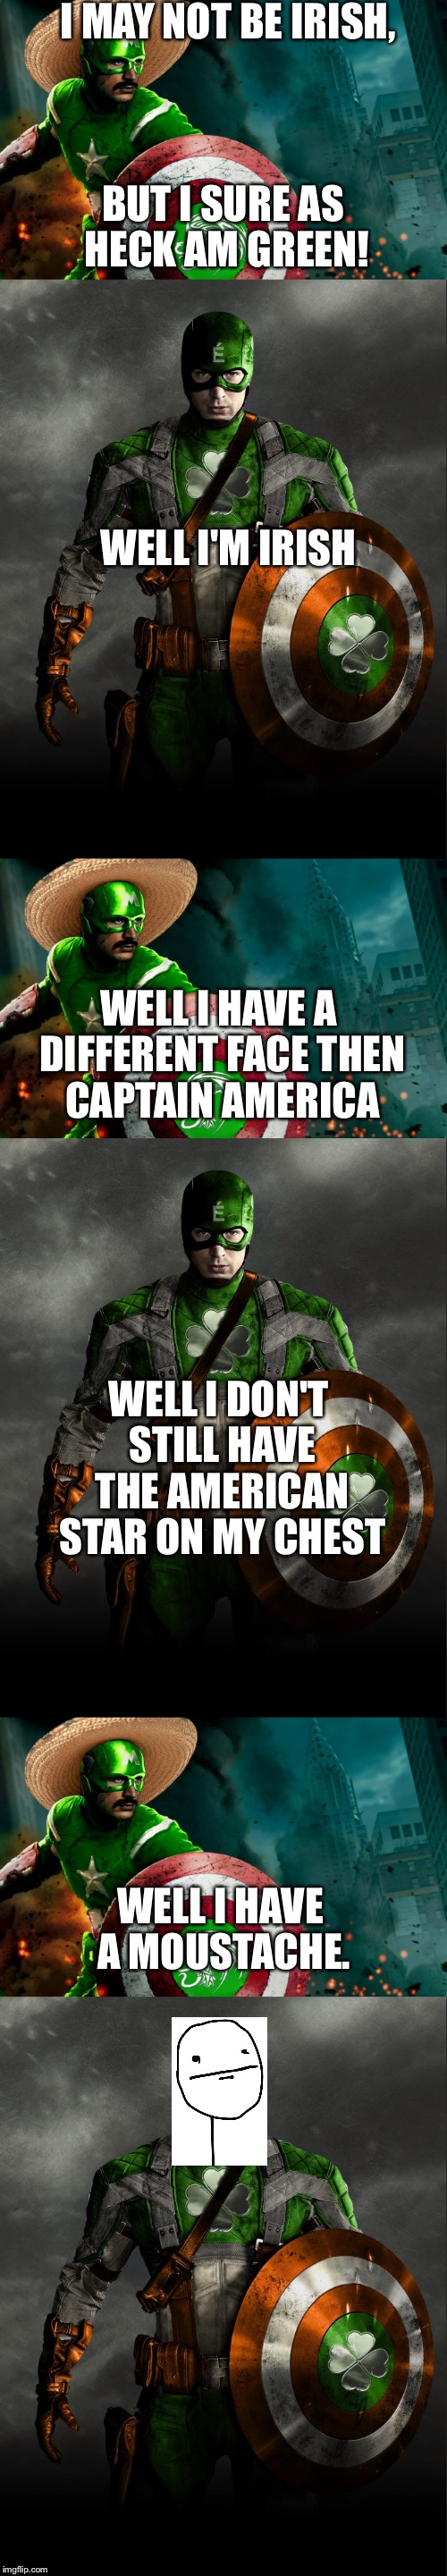 Happy Saint Patrick's day everyone! |  I MAY NOT BE IRISH, BUT I SURE AS HECK AM GREEN! WELL I'M IRISH; WELL I HAVE A DIFFERENT FACE THEN CAPTAIN AMERICA; WELL I DON'T STILL HAVE THE AMERICAN STAR ON MY CHEST; WELL I HAVE A MOUSTACHE. | image tagged in memes,mexico,holidays,ireland,moustache,green | made w/ Imgflip meme maker